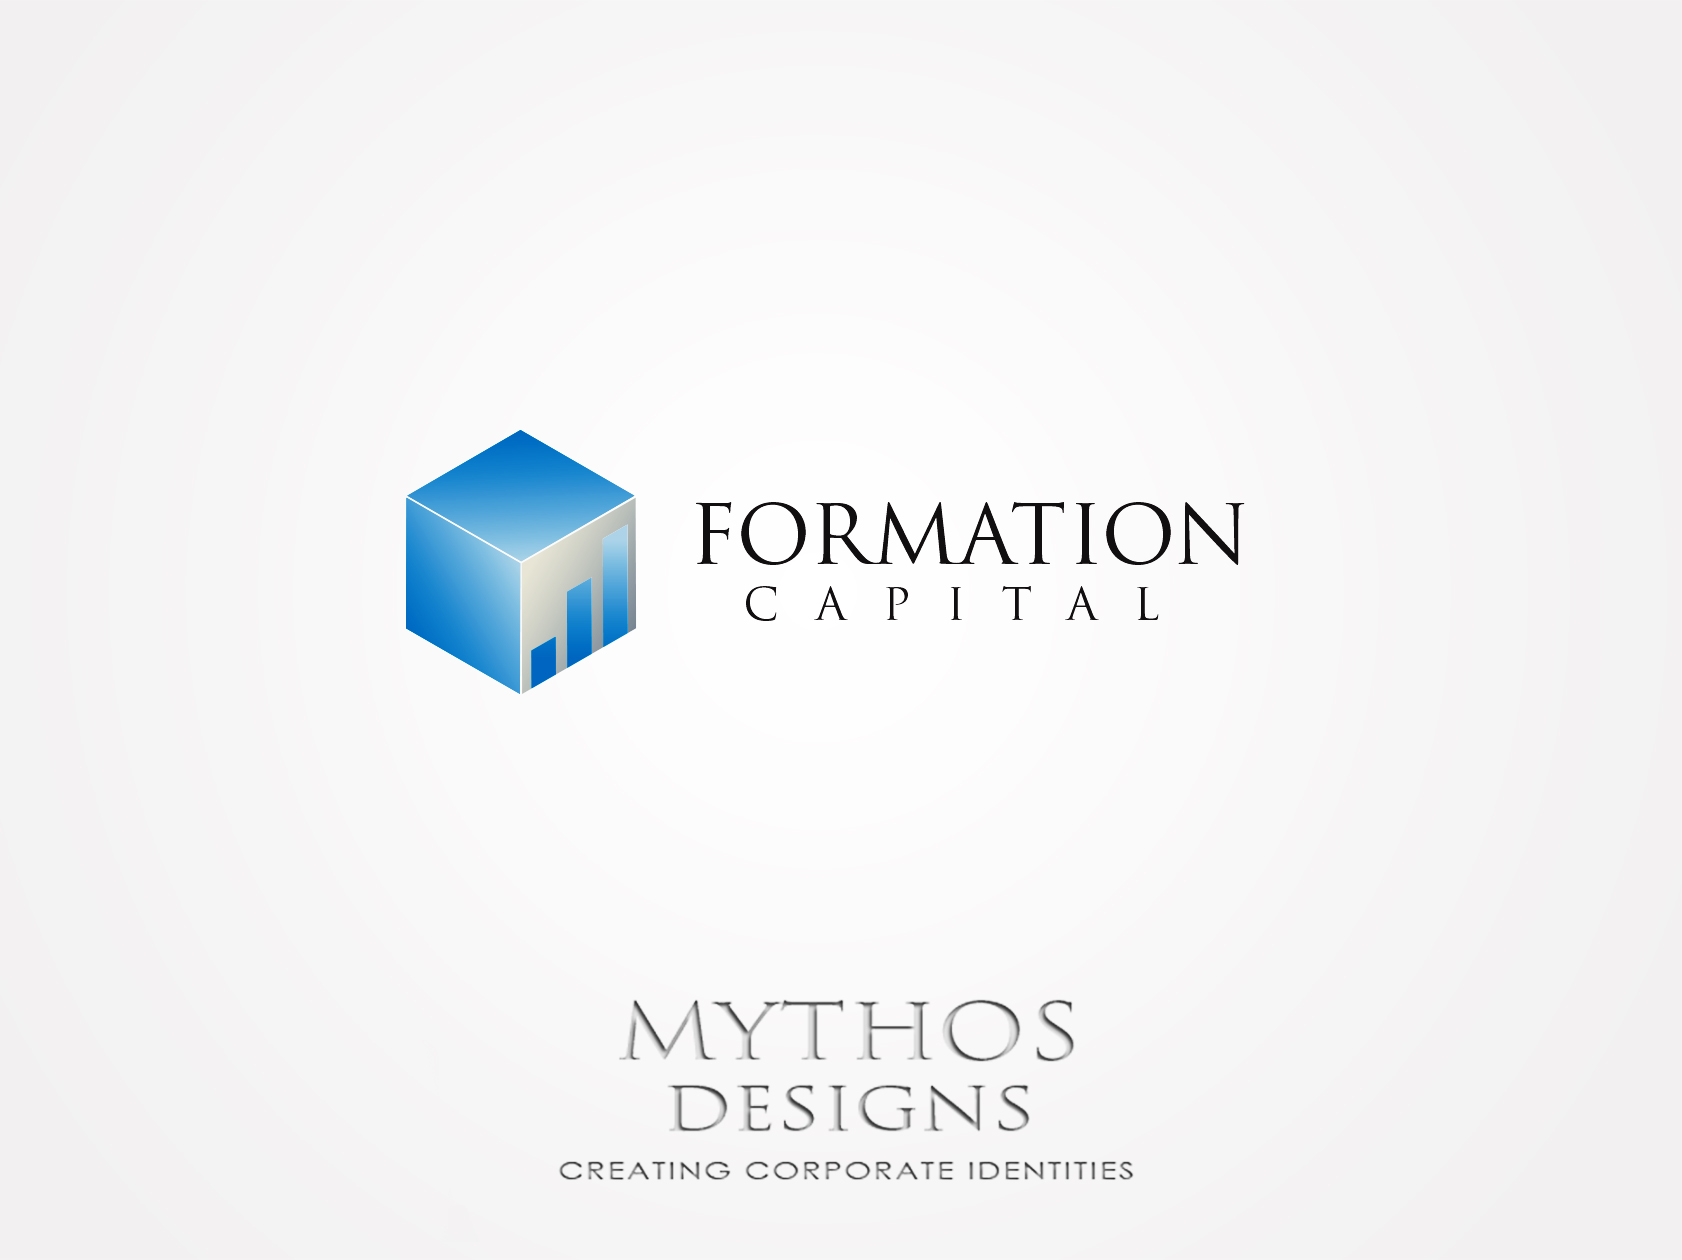 Logo Design by Mythos Designs - Entry No. 60 in the Logo Design Contest Inspiring Logo Design for Formation Capital.